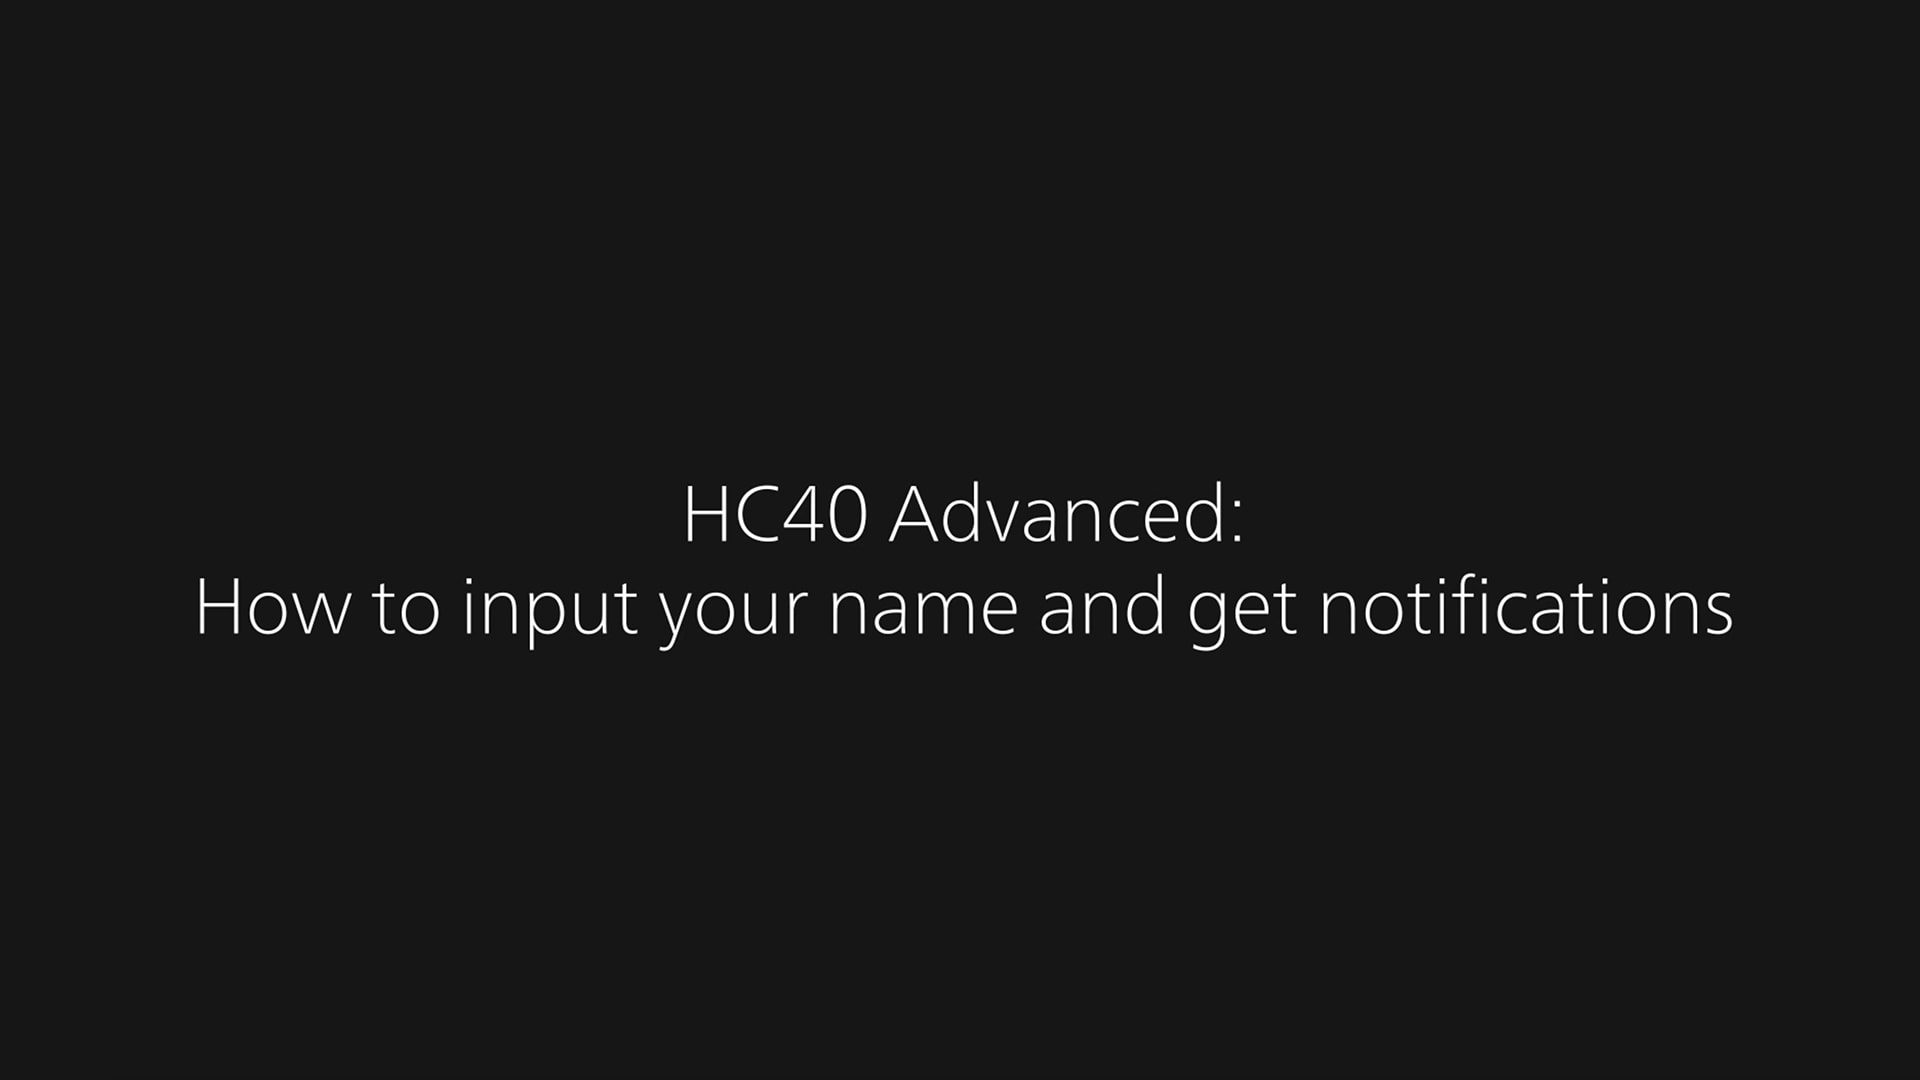 HC40 Advanced: How to input your name and get notifications